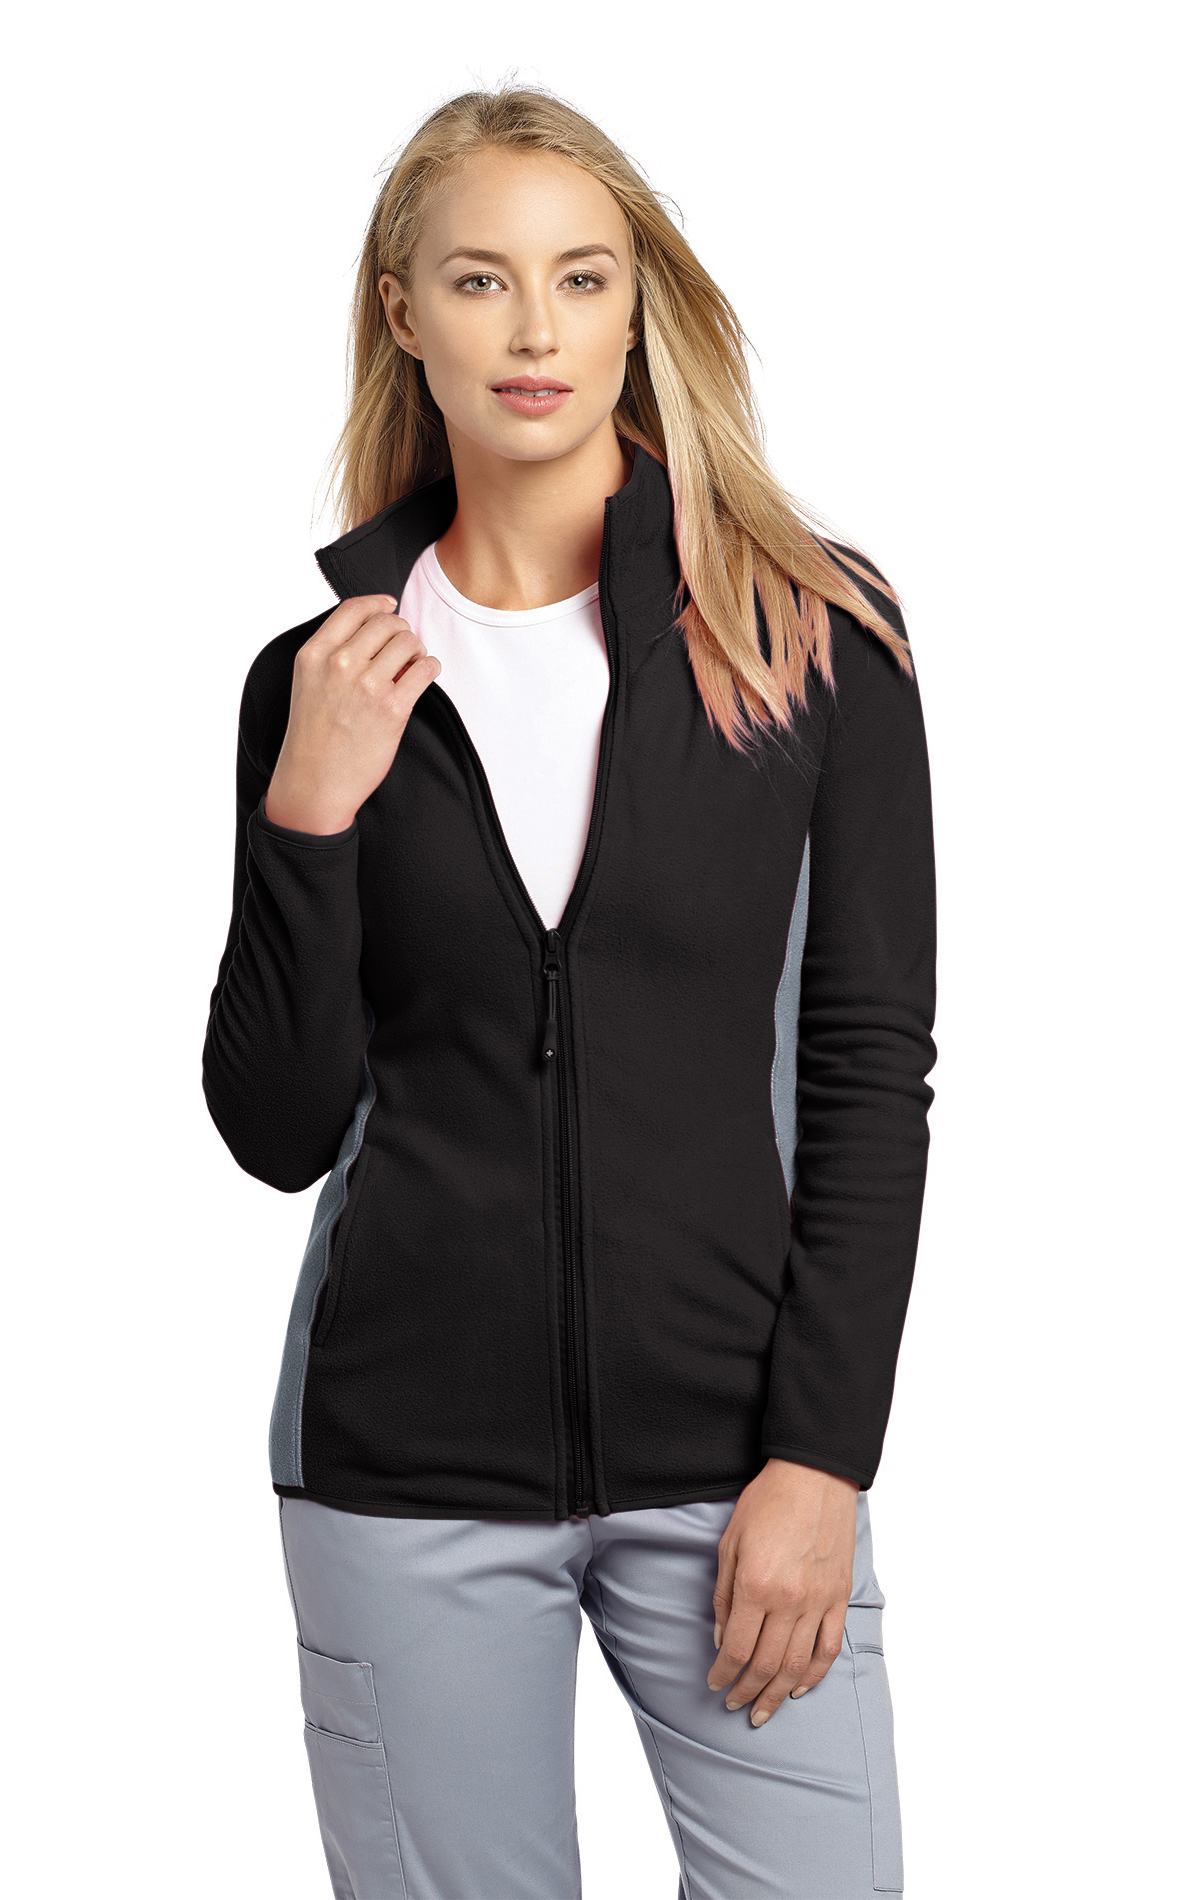 Warmupo Jacket, WC-448